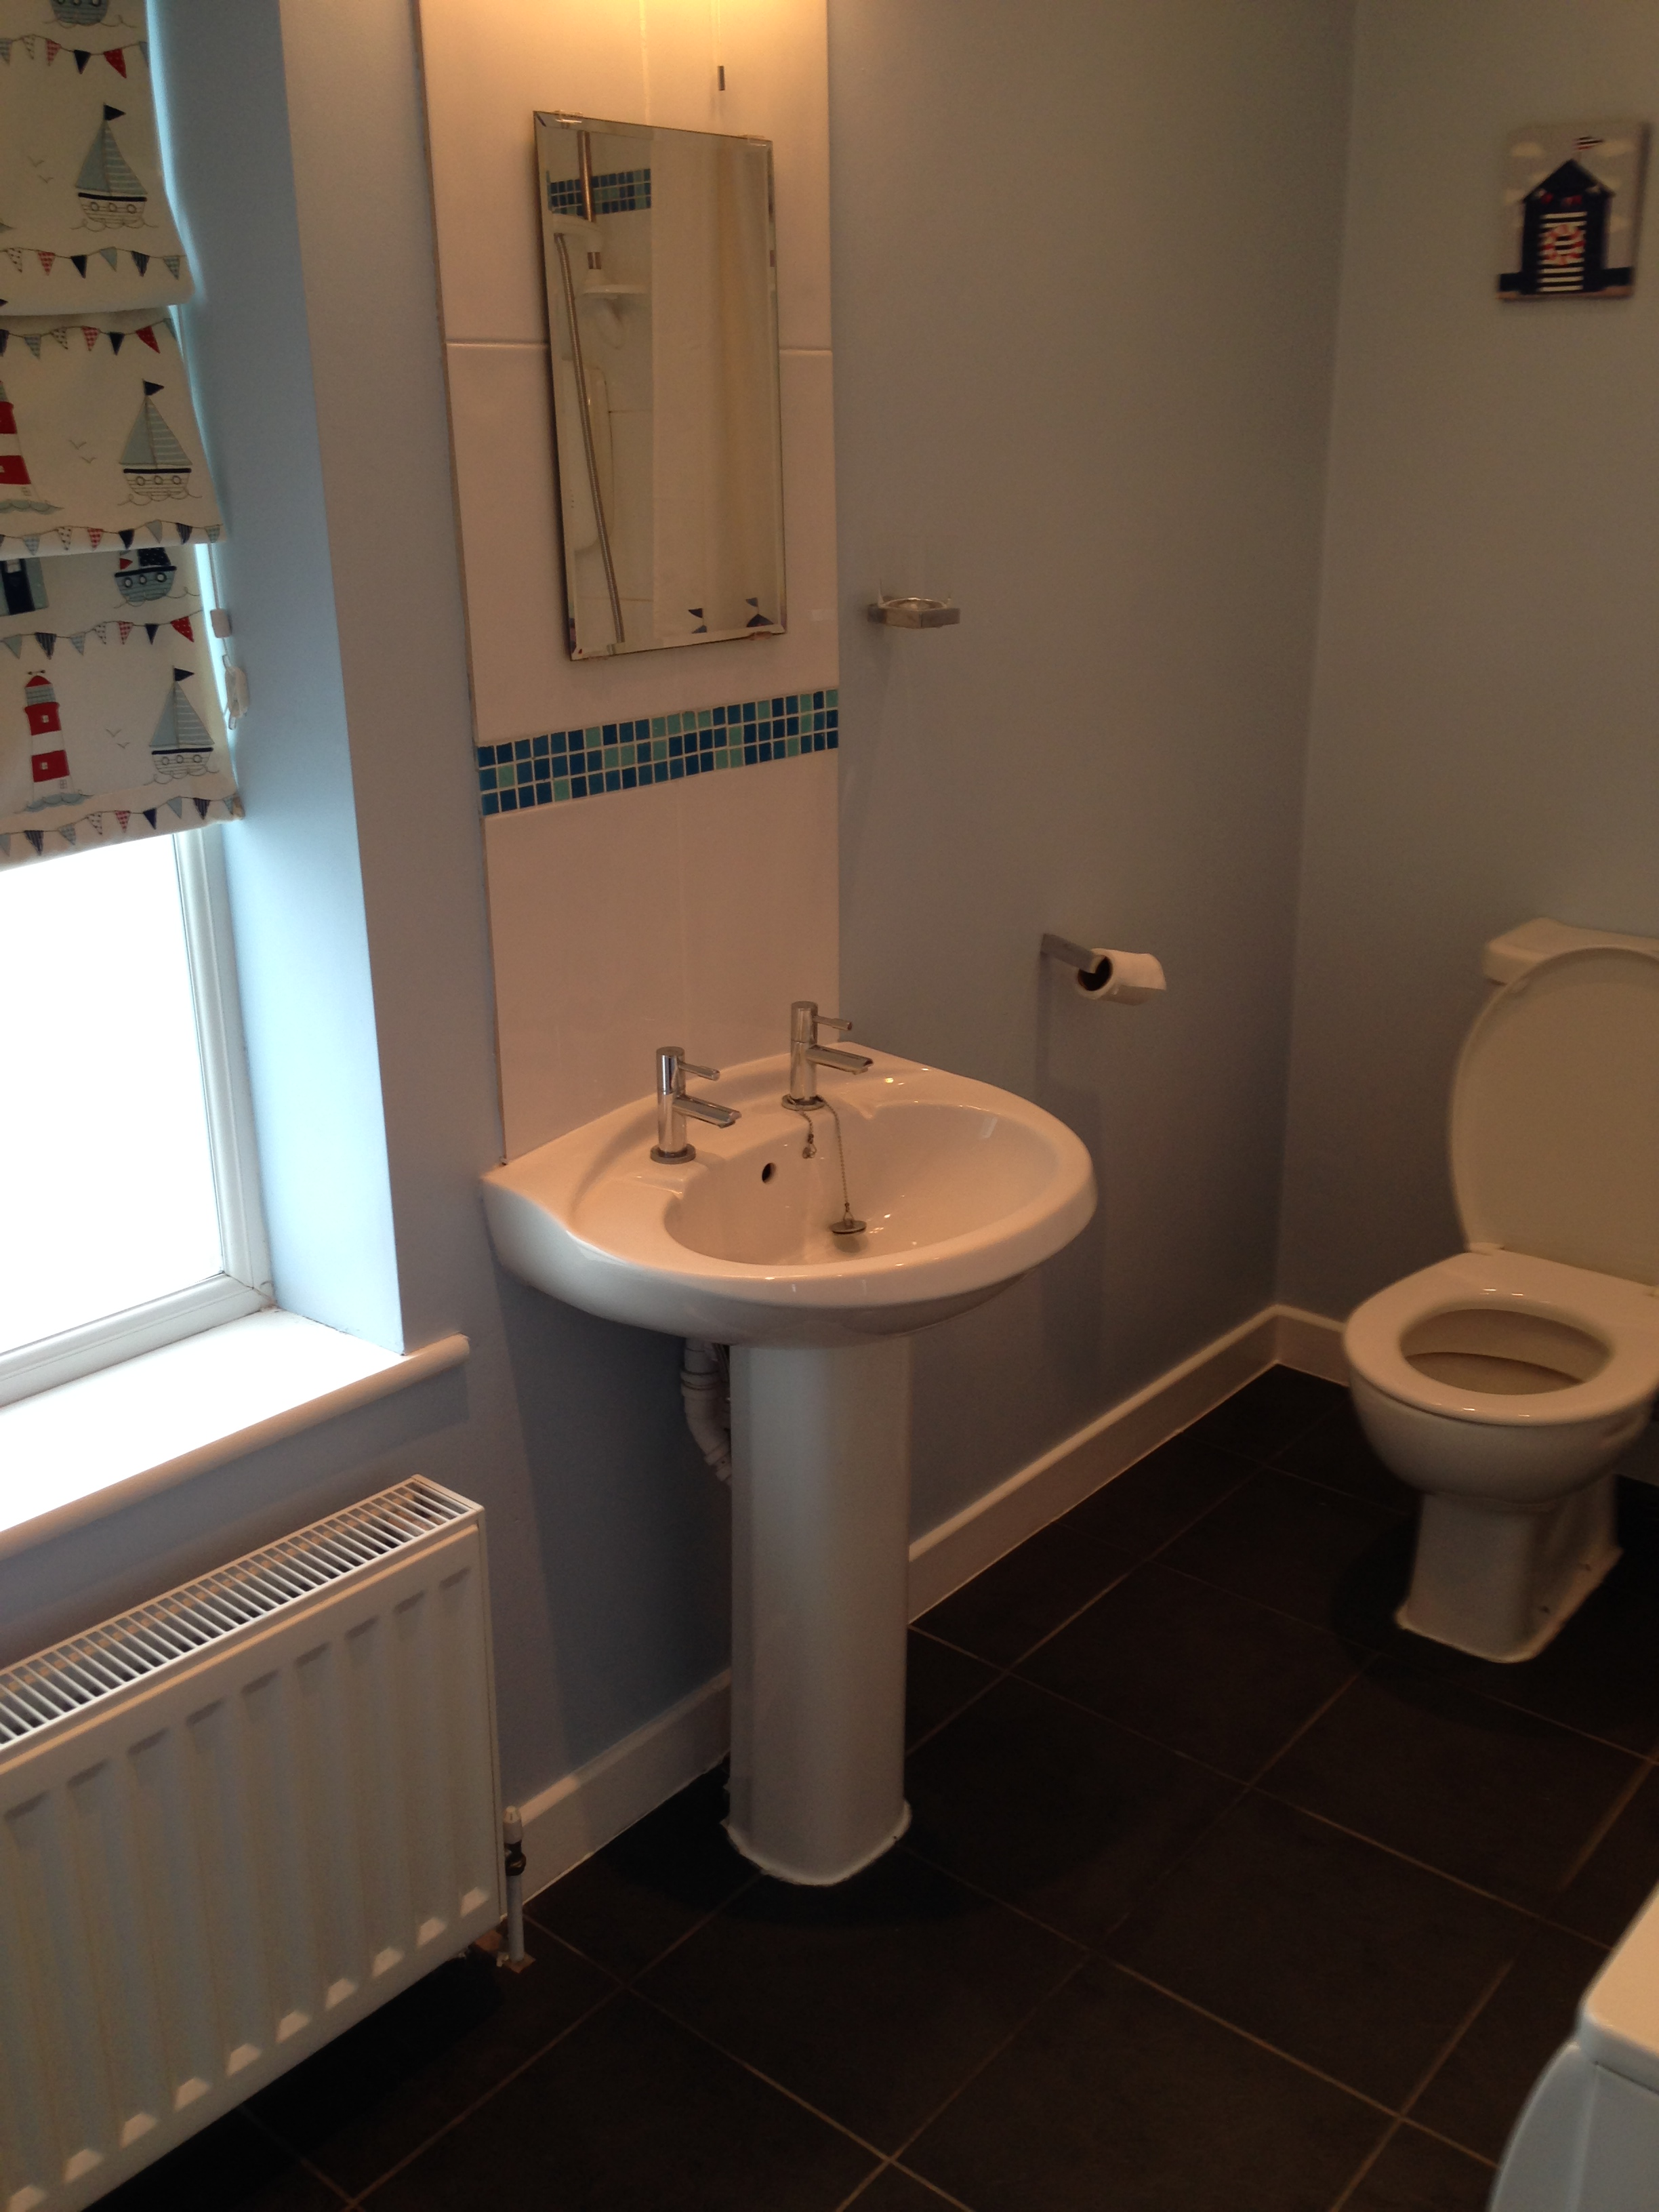 Completed bathroom installation